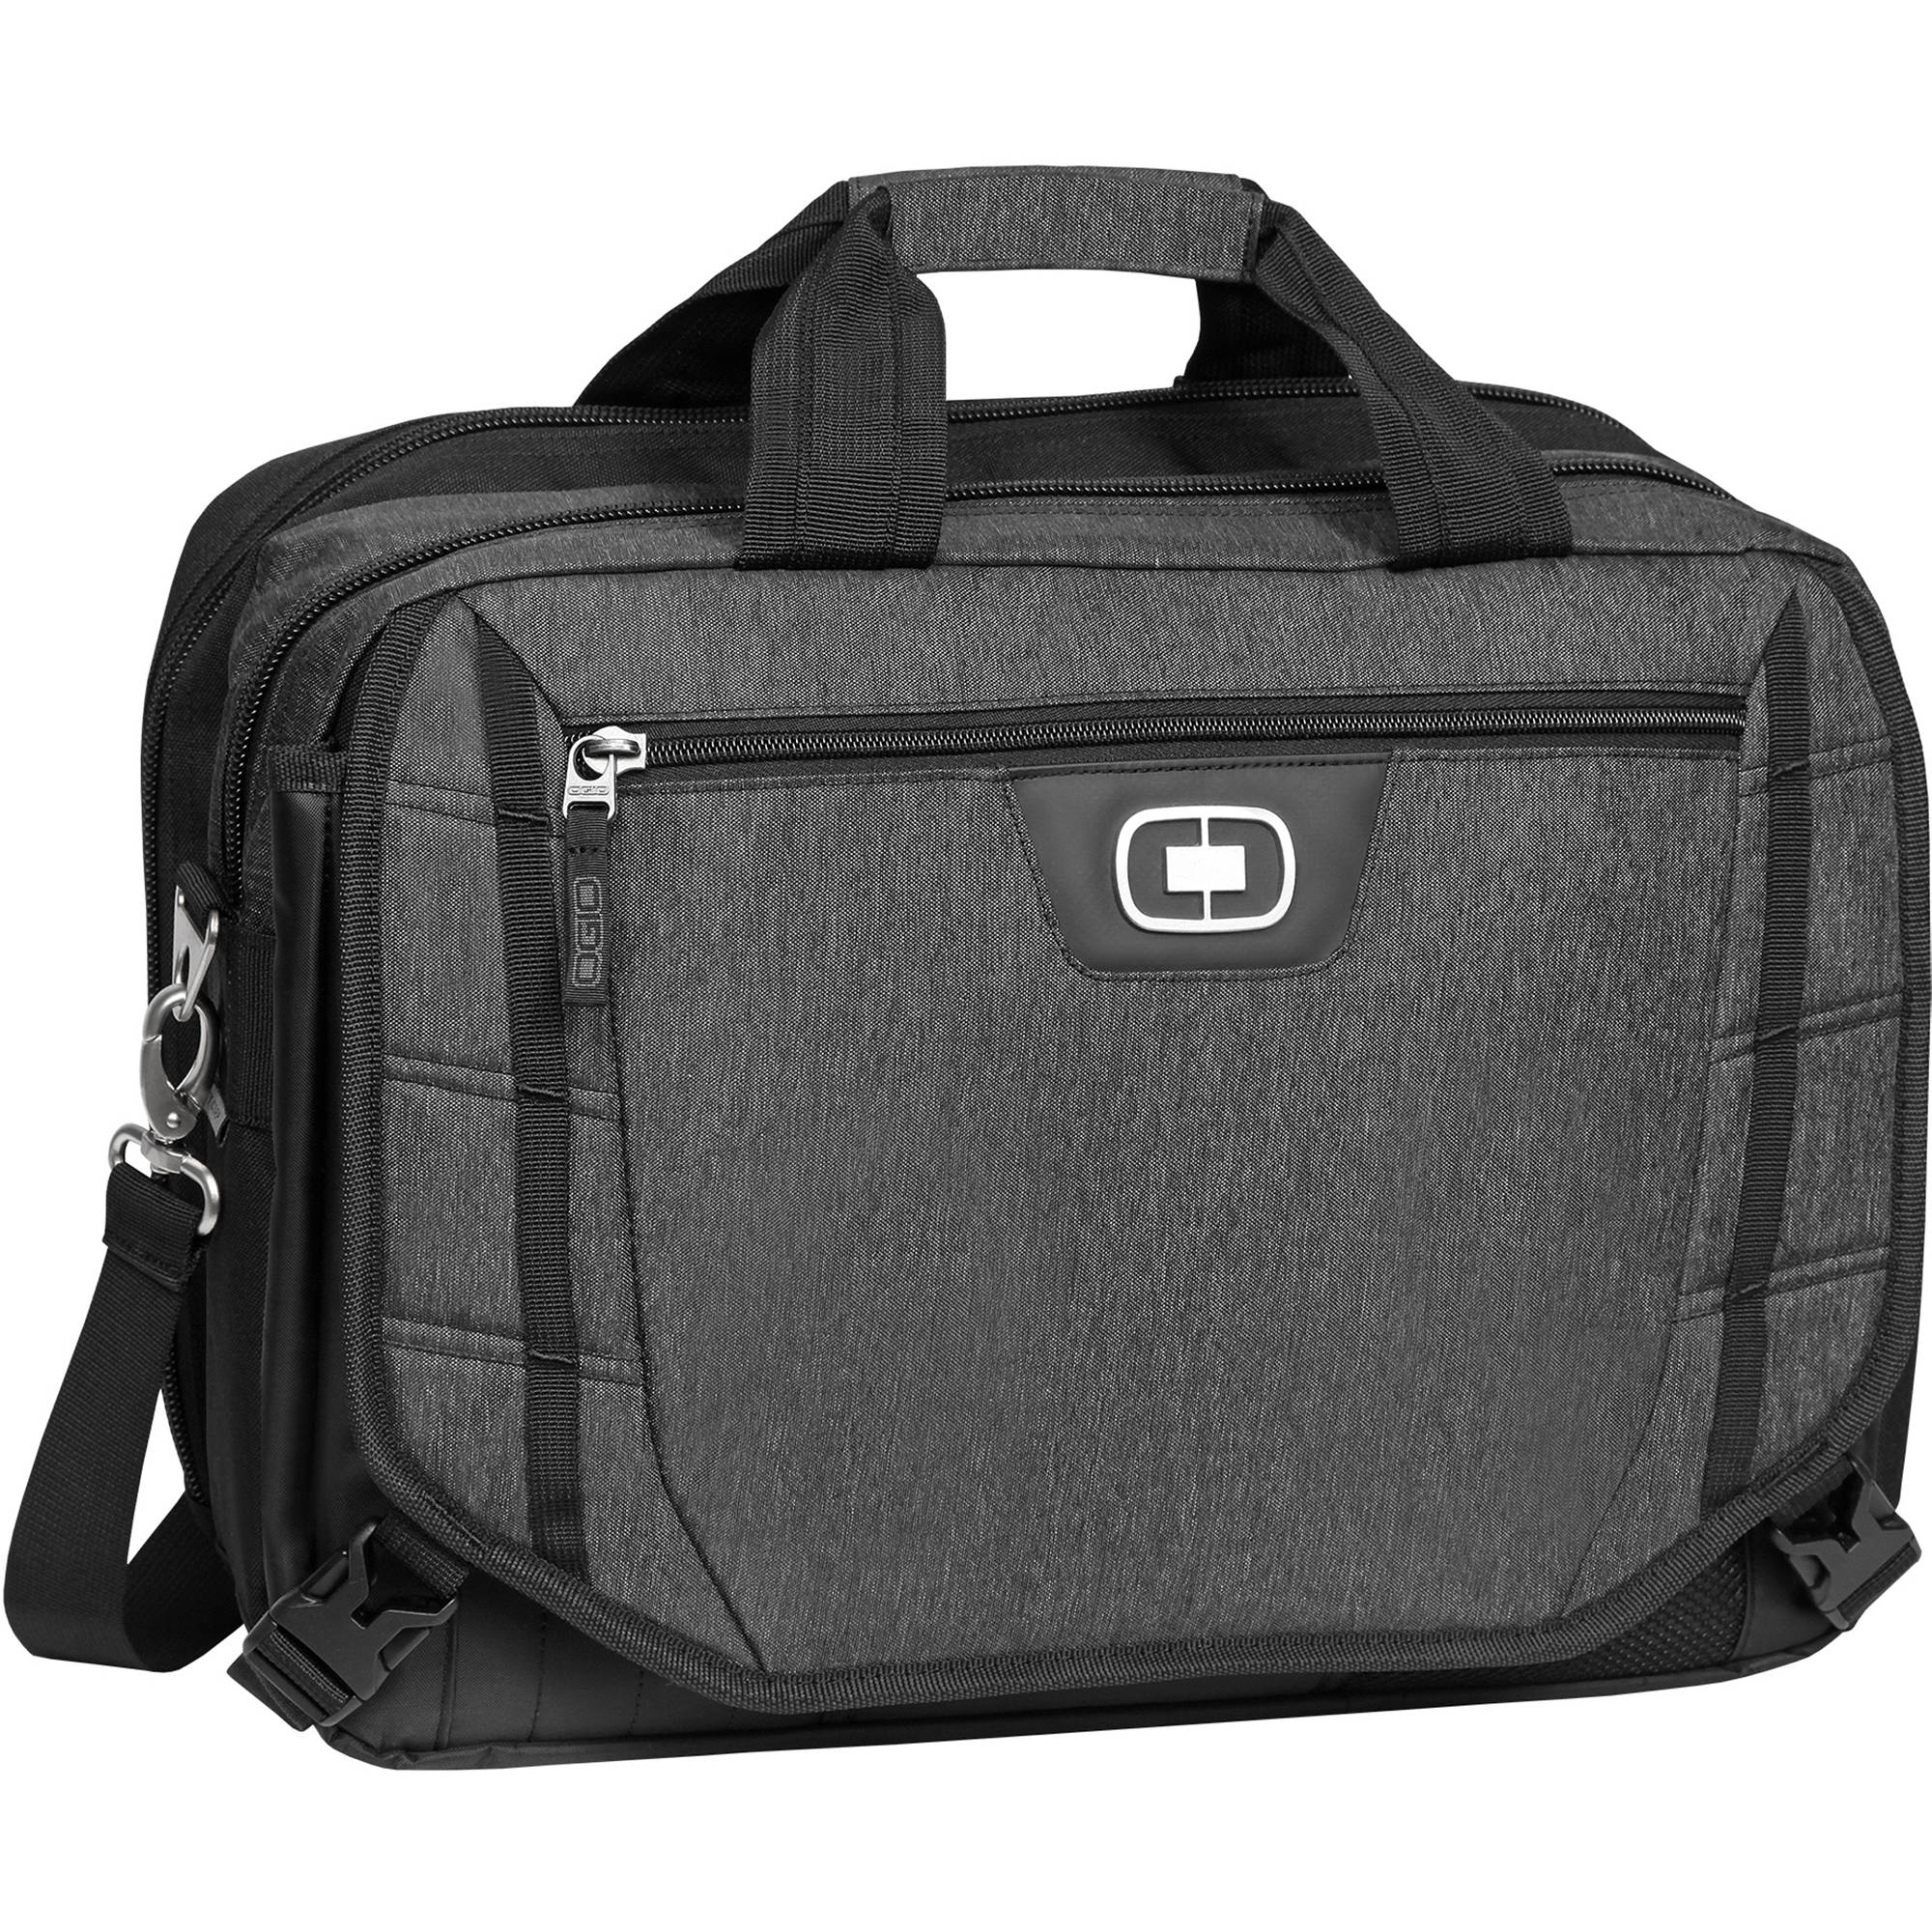 Ogio Circuit Tzm Messenger Bag For 15 Laptop Black Dark Static